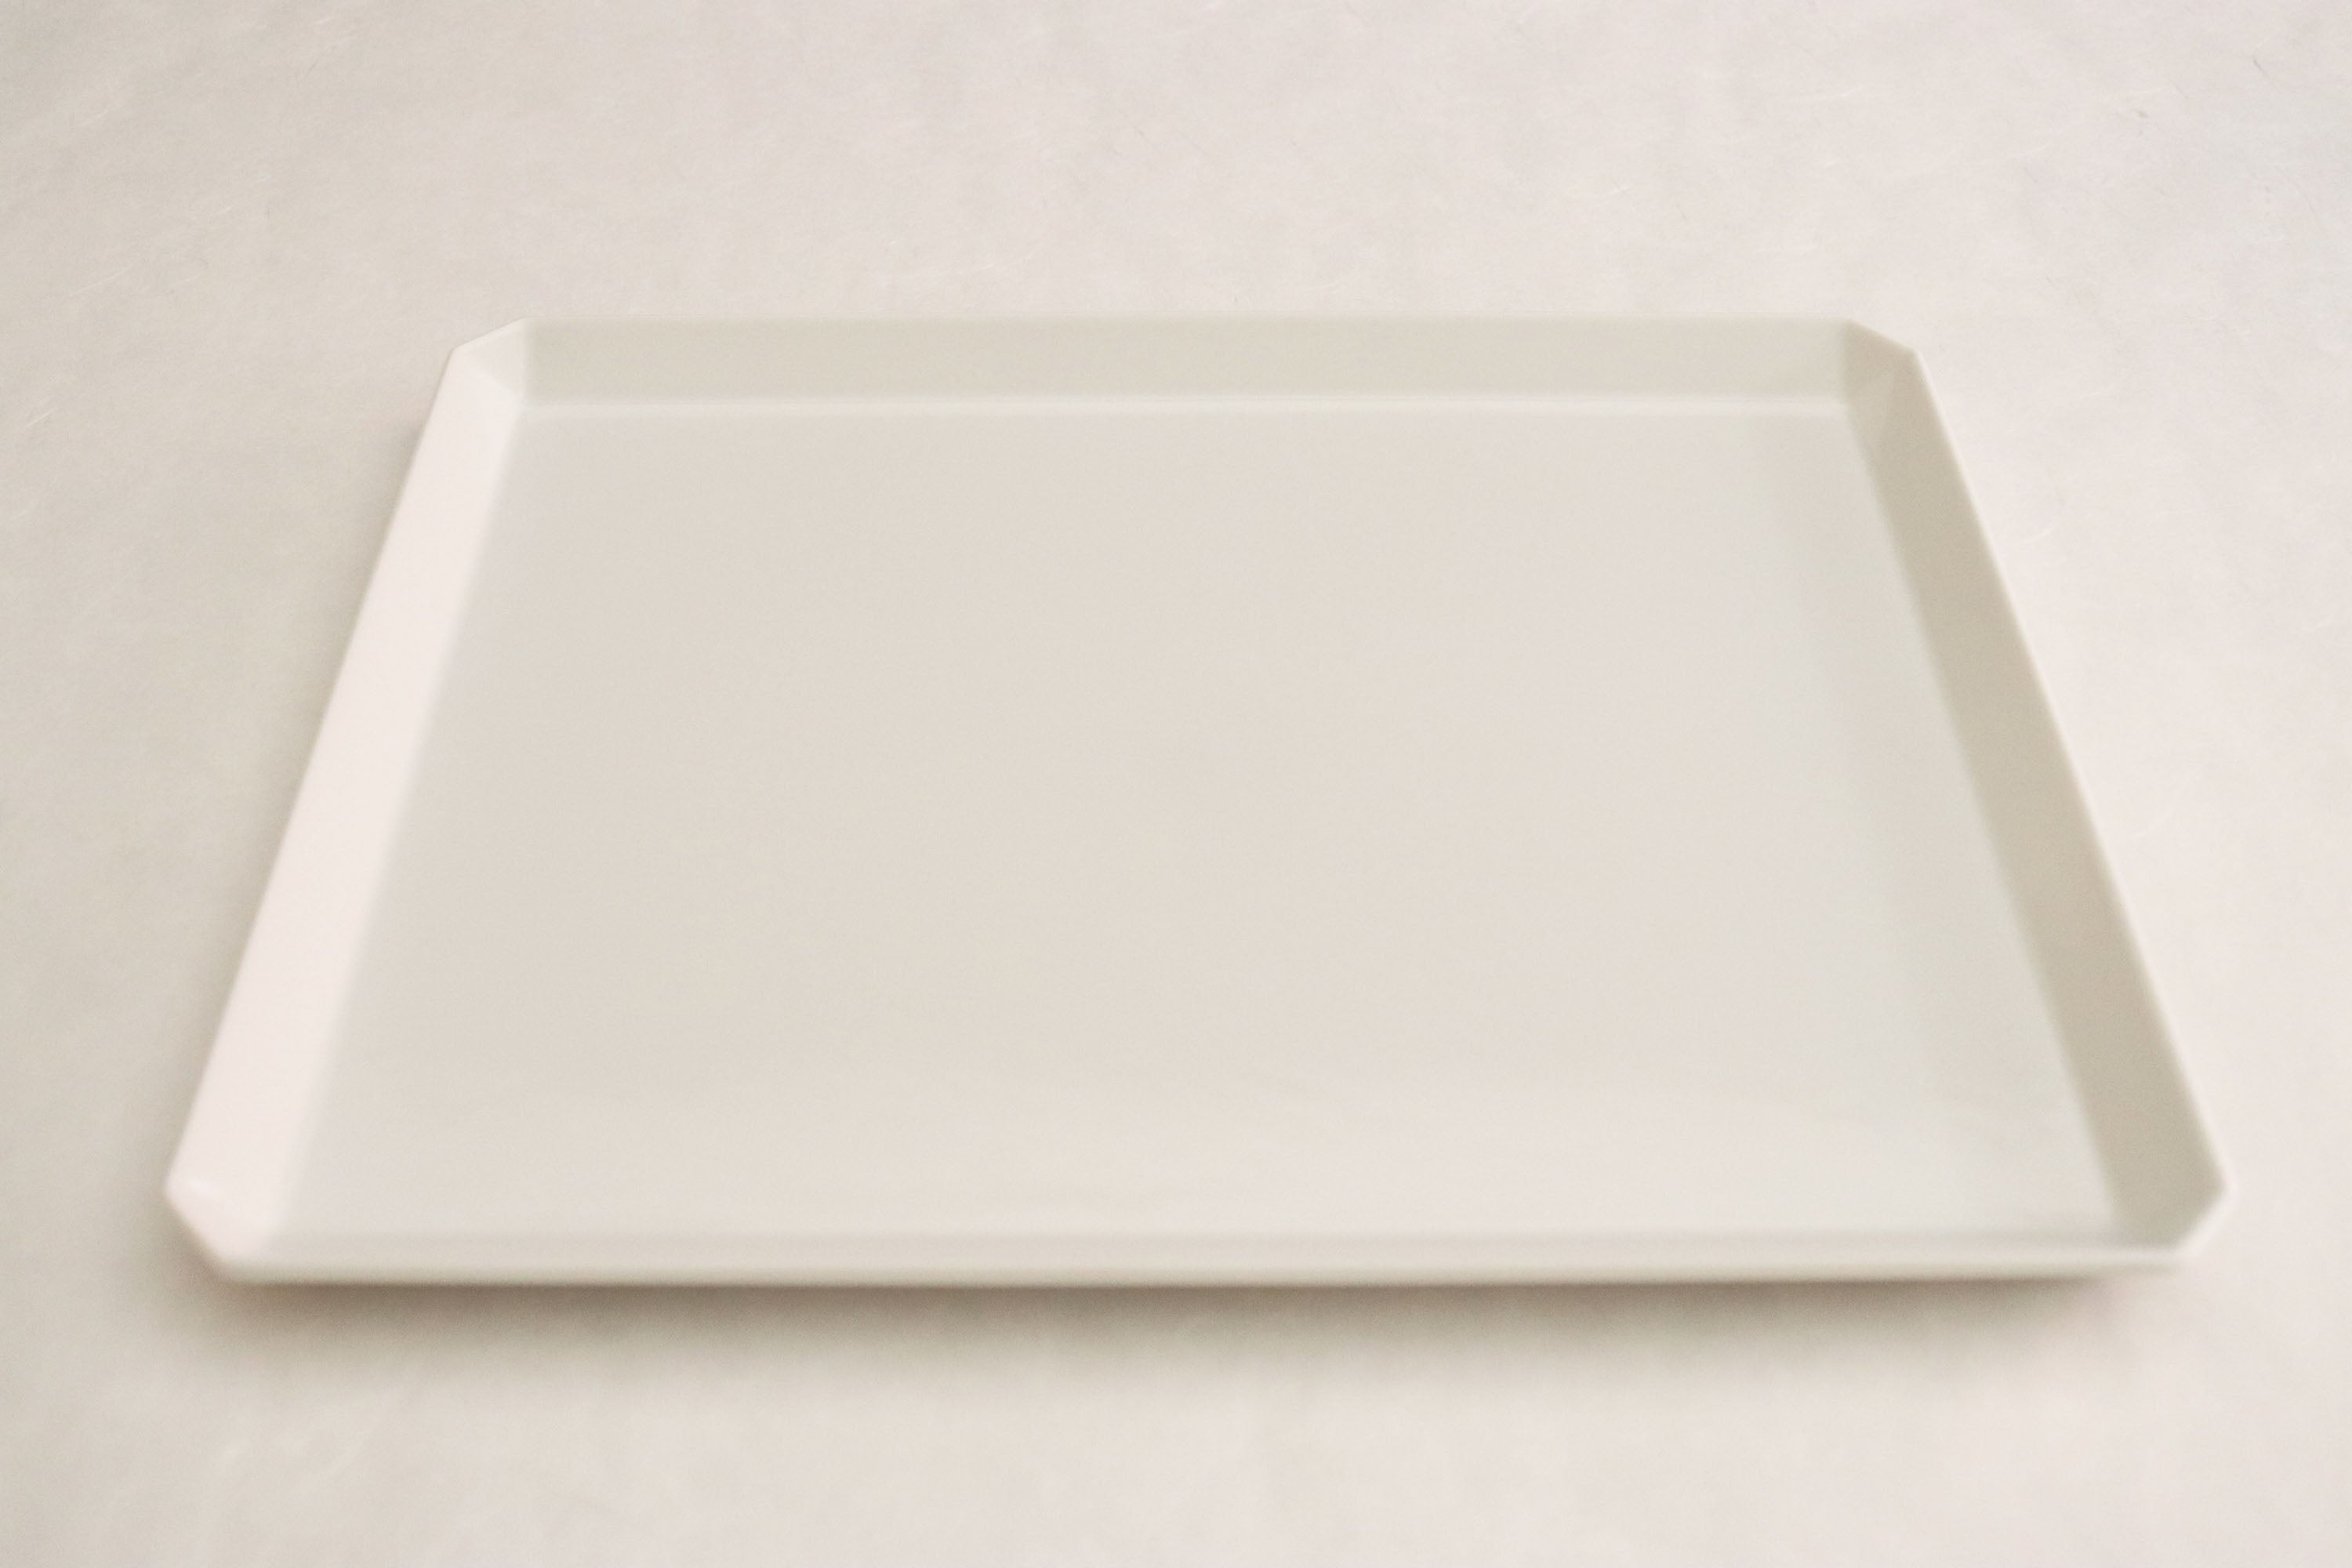 "TY""Standard"" Square Plate 270"